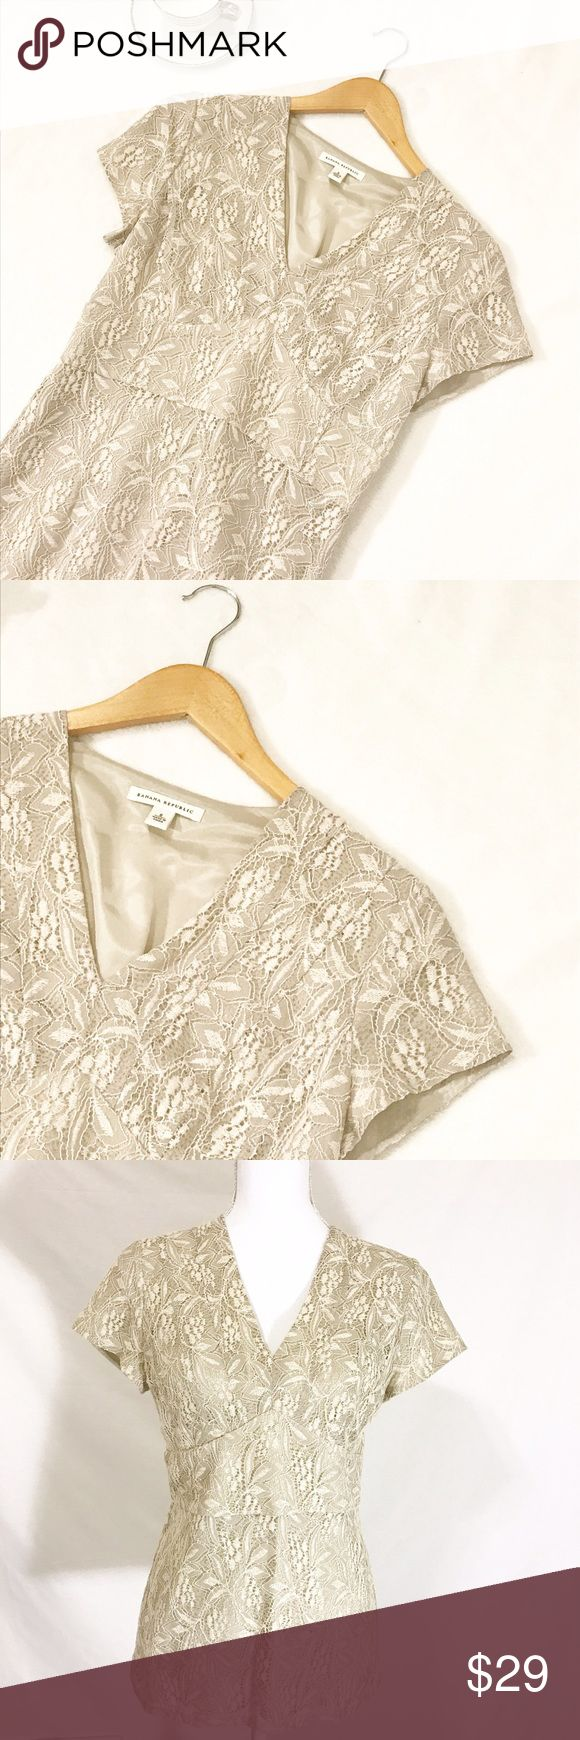 "Banana Republic Elegant Lace Beige Blouse Beige floral lace blouse with short sleeves. Material: Shell 59% Nylon, 41% Cotton. Lining 100% Acetate.   Size 6   Measurements (laid flat) Armpit to armpit 16.5"".  Waist 15"". Length 25""   Condition Excellent condition pre-owned. No flaws noted. Banana Republic Tops Blouses"